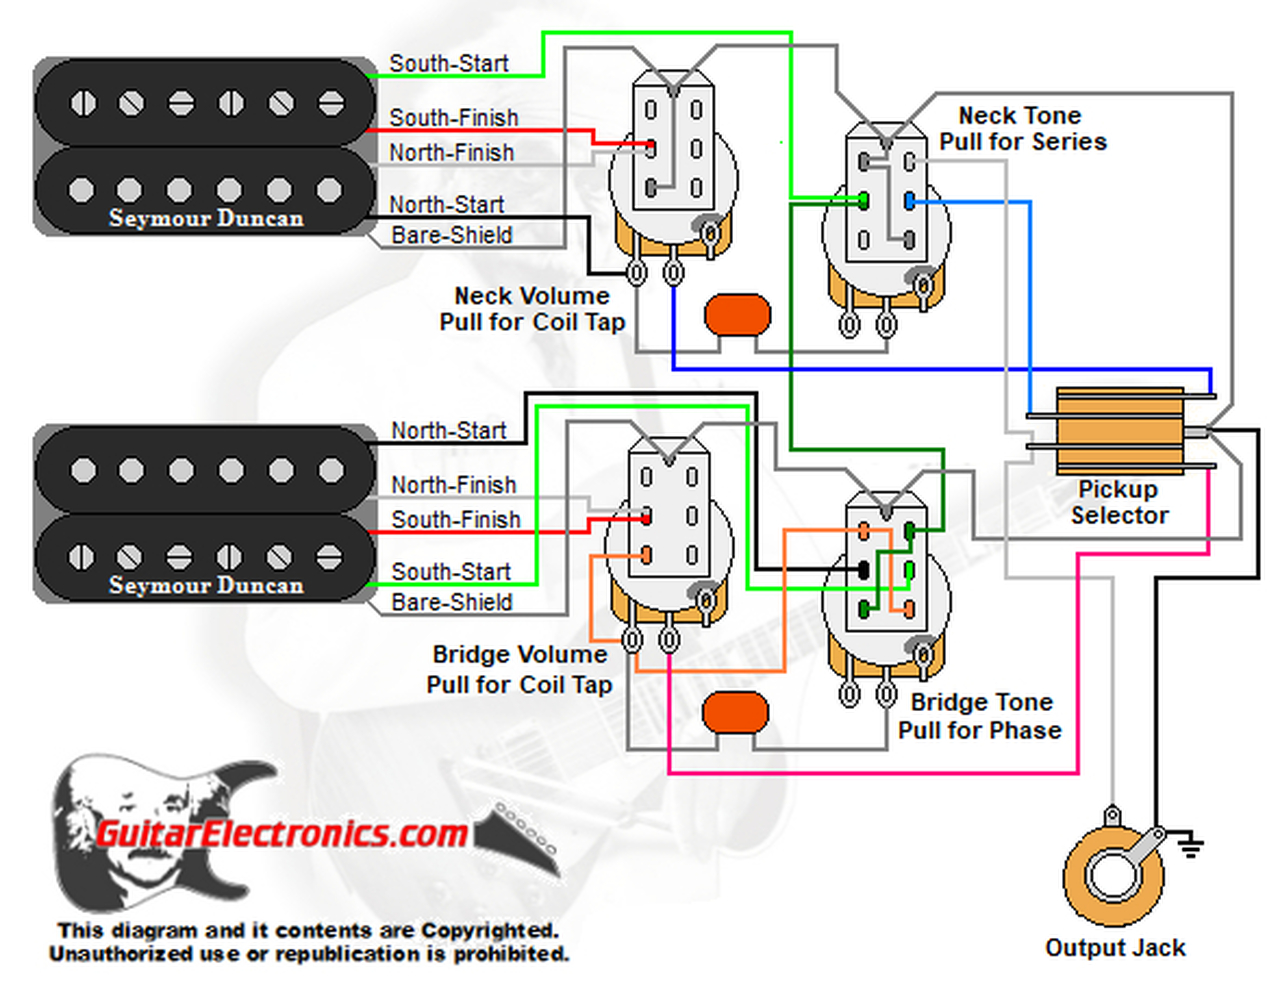 2 HBs/3-Way/2 Vol/2 Tone/Coil Tap Series Parallel Phase-Jimmy PageGuitar Electronics